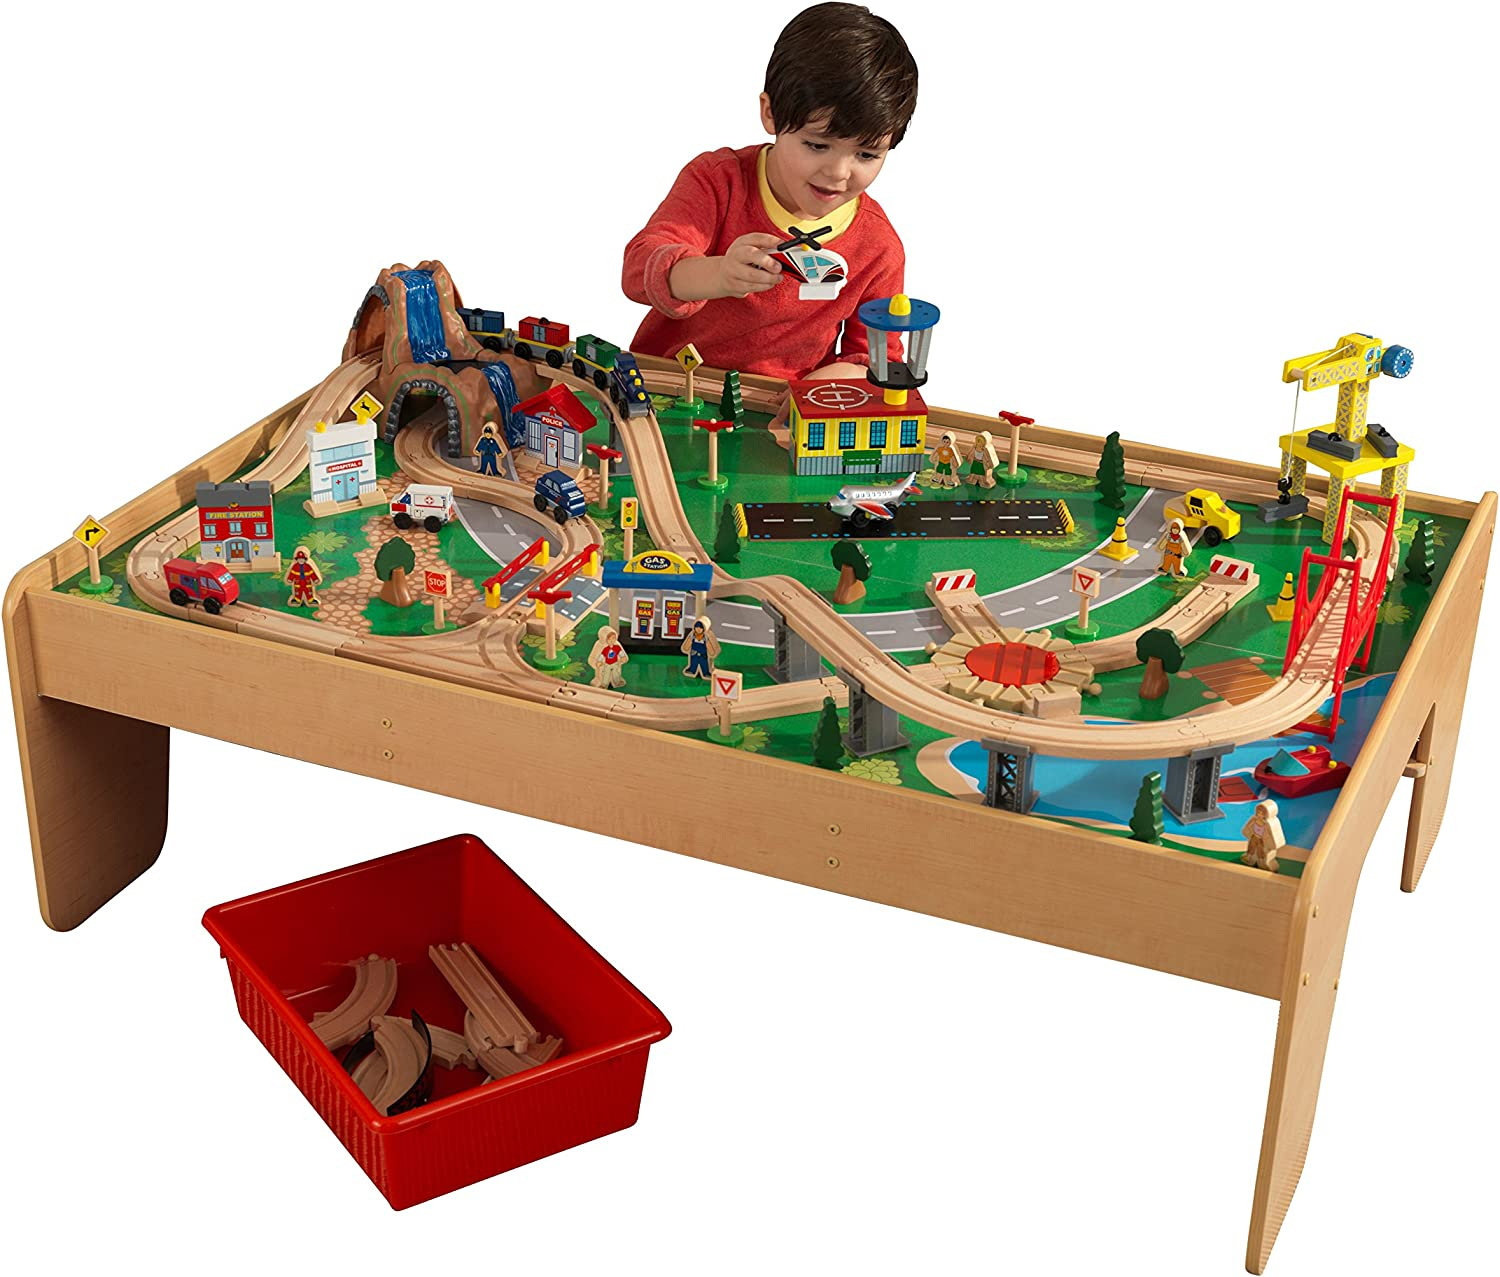 Top 10 Best Train Sets For Toddlers You Can Find in 2020 5